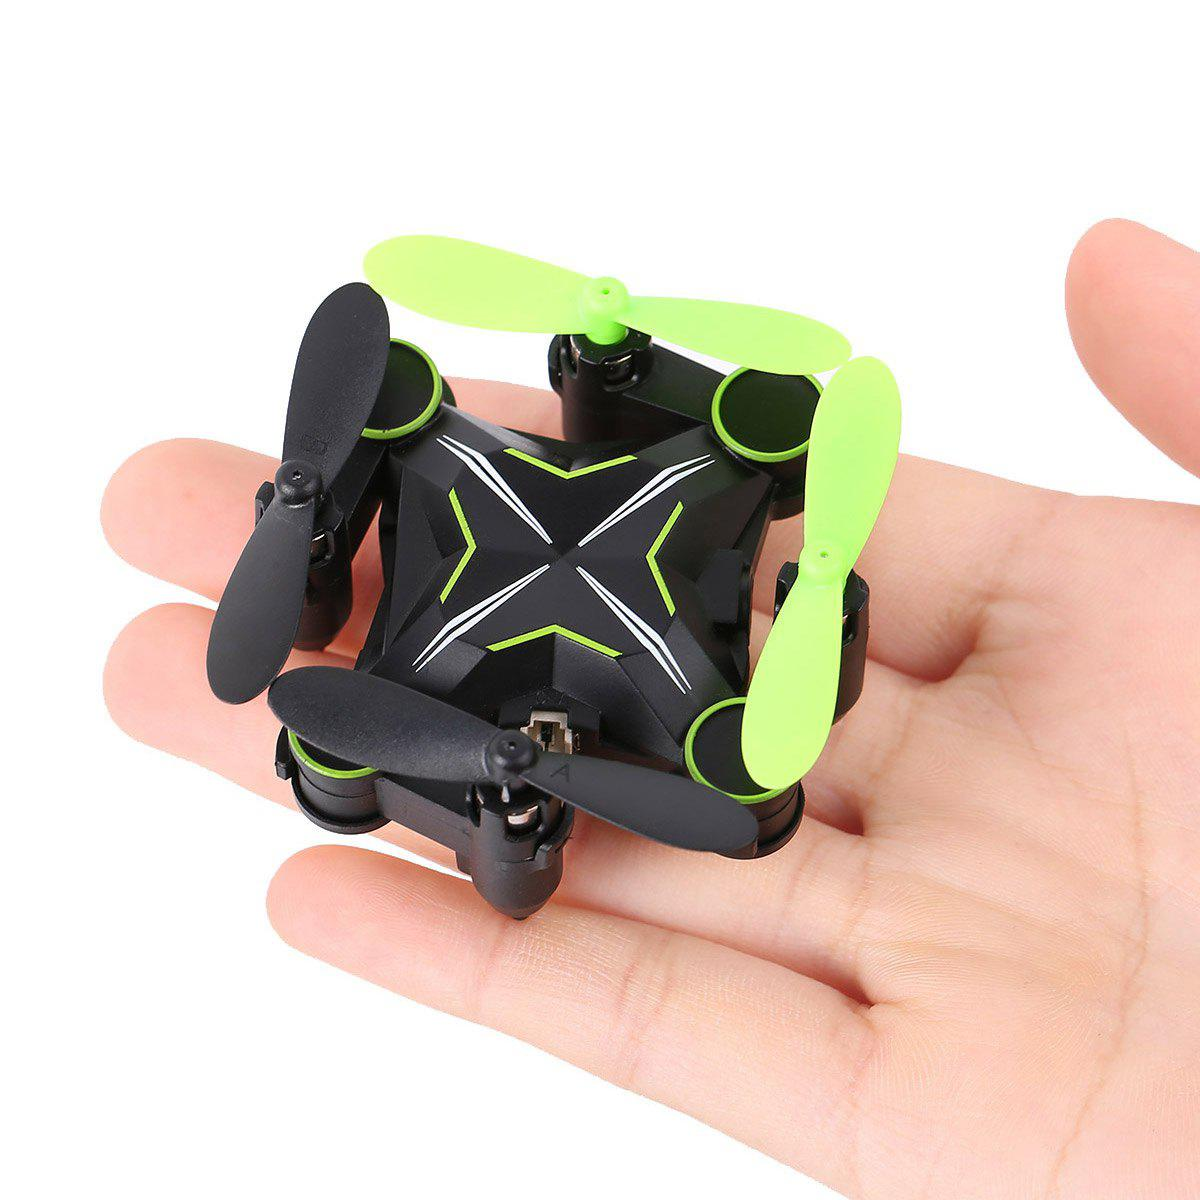 HELIWAY 901H 0.3MP Camera 2.4GHz 6CH 6-axis Gyro Foldable Air Press Altitude Hold Headless Mode QuadcopterHome<br><br><br>Color: CRYSTAL GREEN